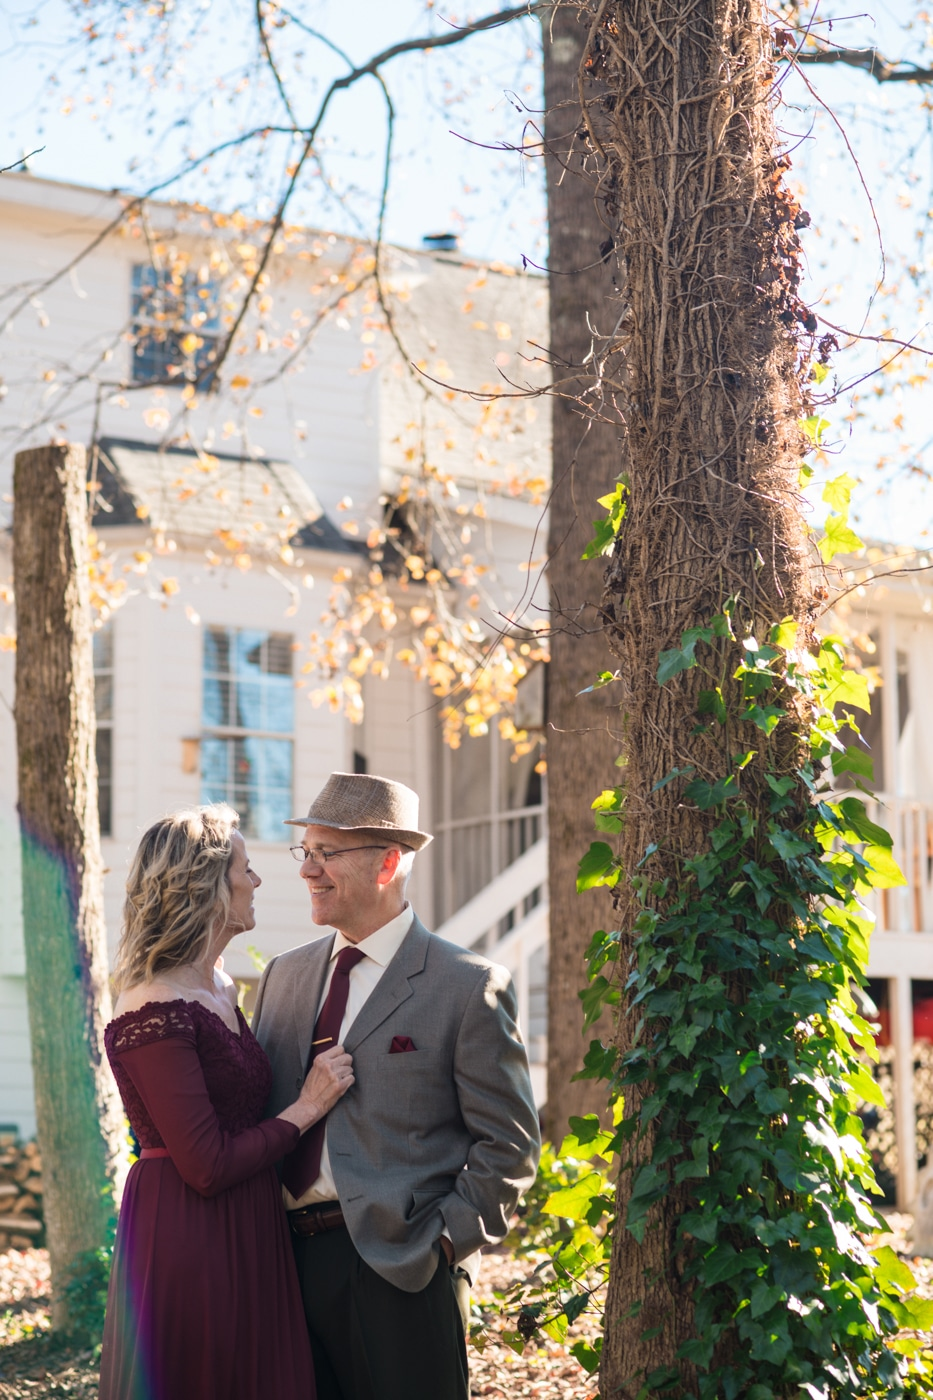 at-home elopement with portraits outside home